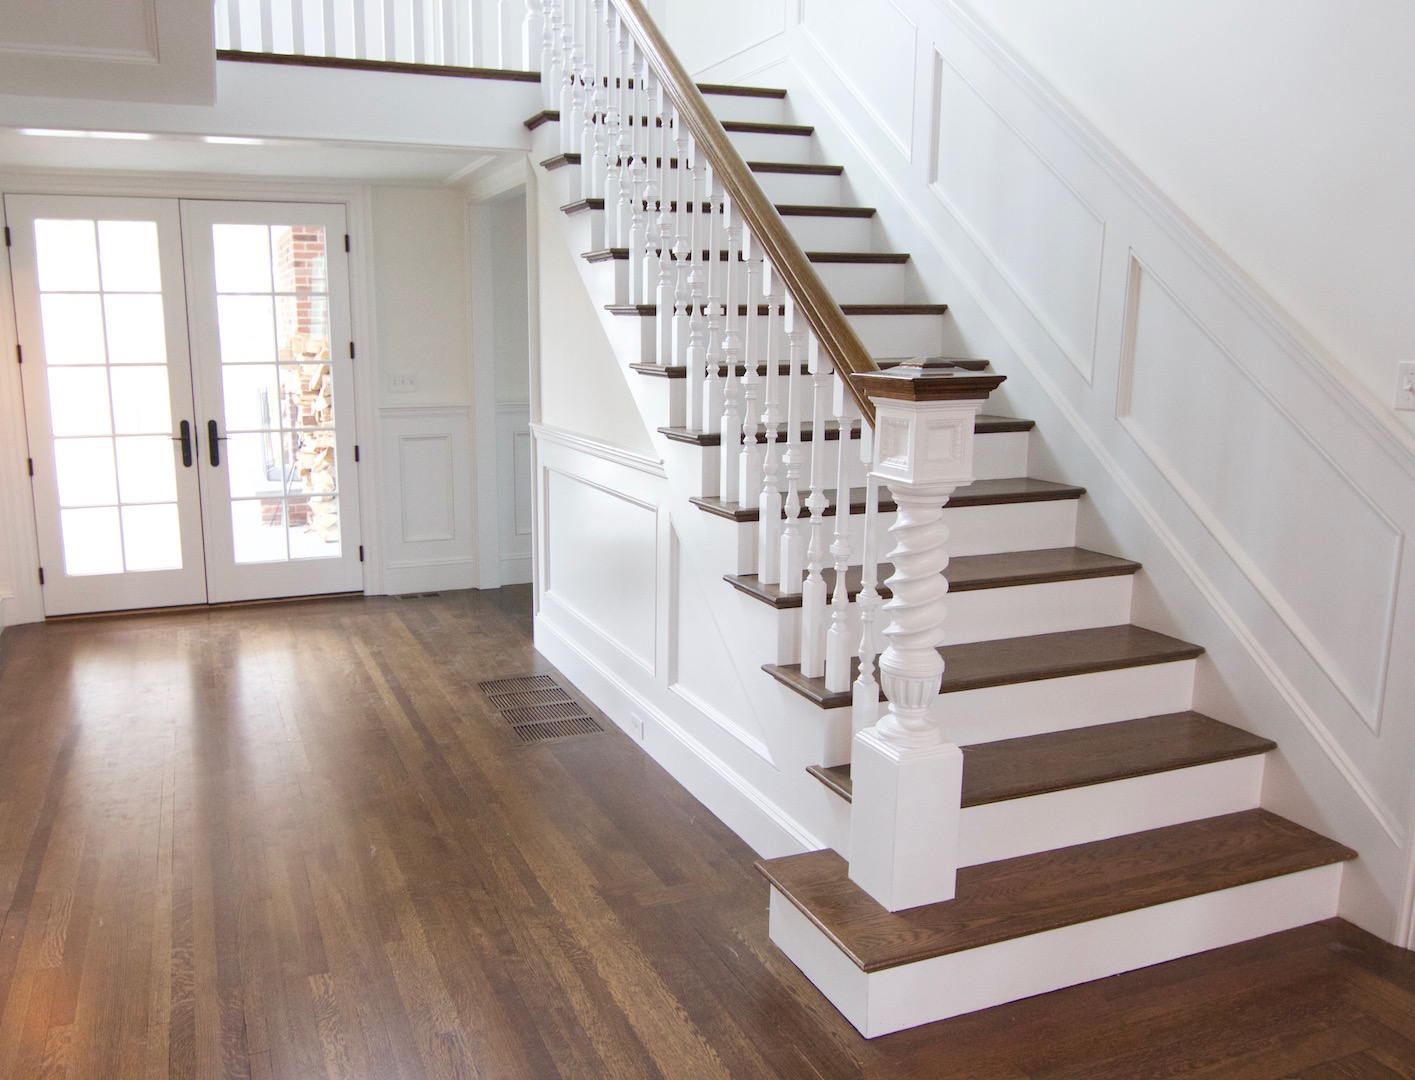 Wooden Staircase Pictures Hardwood Staircases Images And Photos Of Different Wood